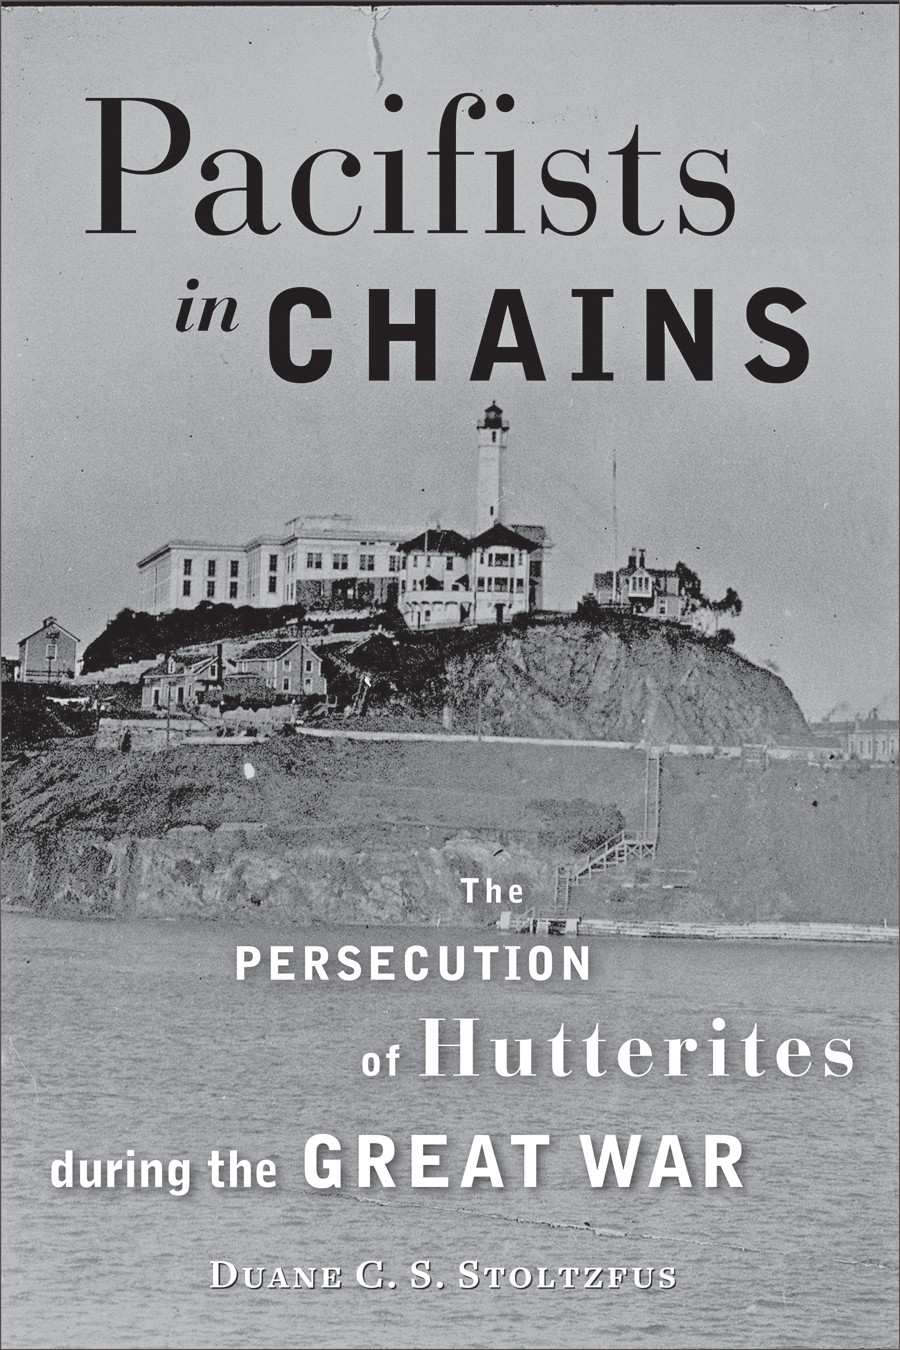 Pacifists in Chains